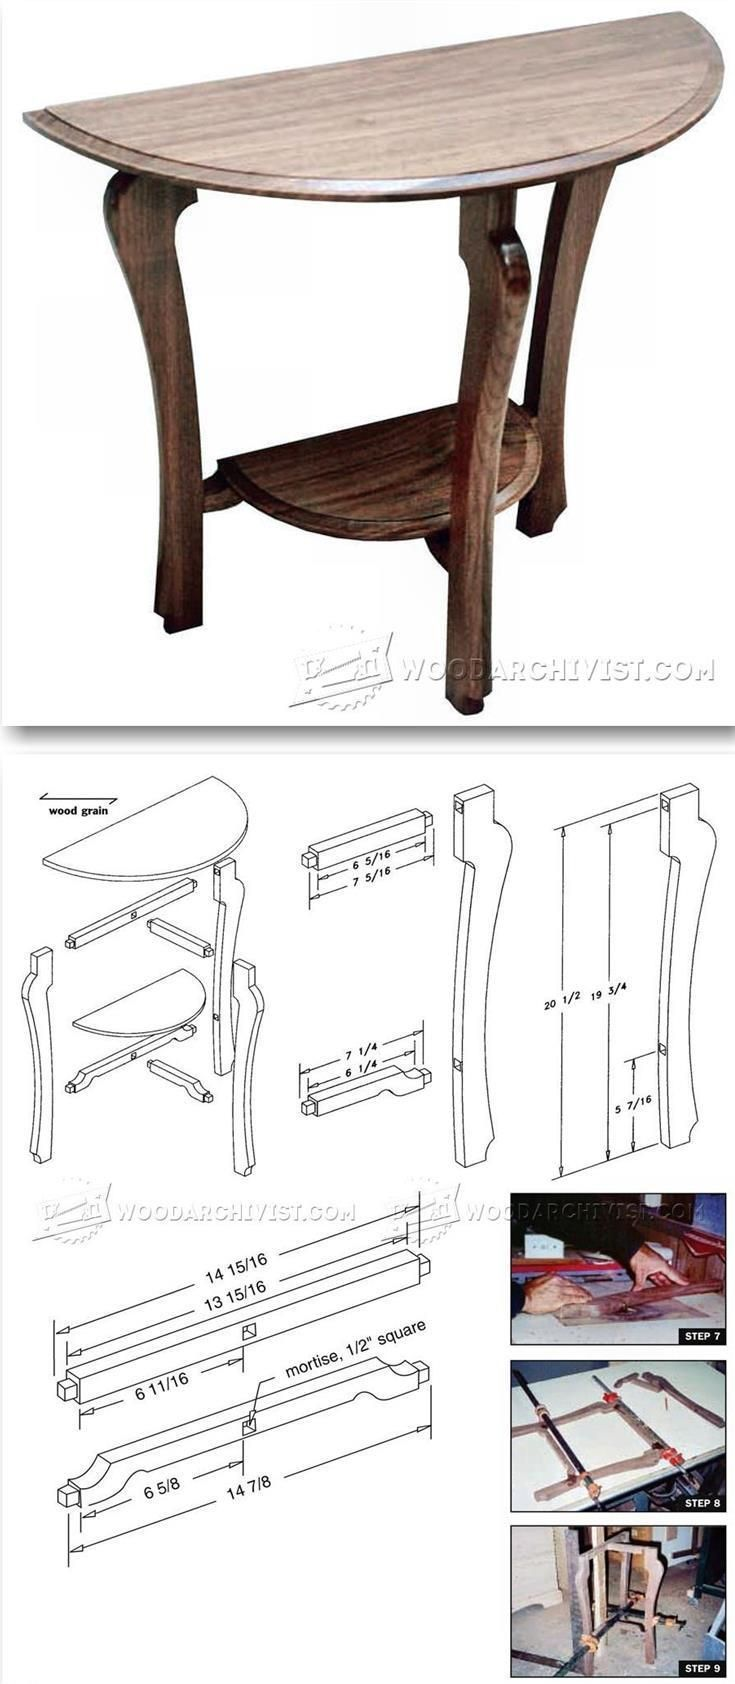 Half Moon Table Plans - Furniture Plans and Projects | WoodArchivist.com #woodworkingplans